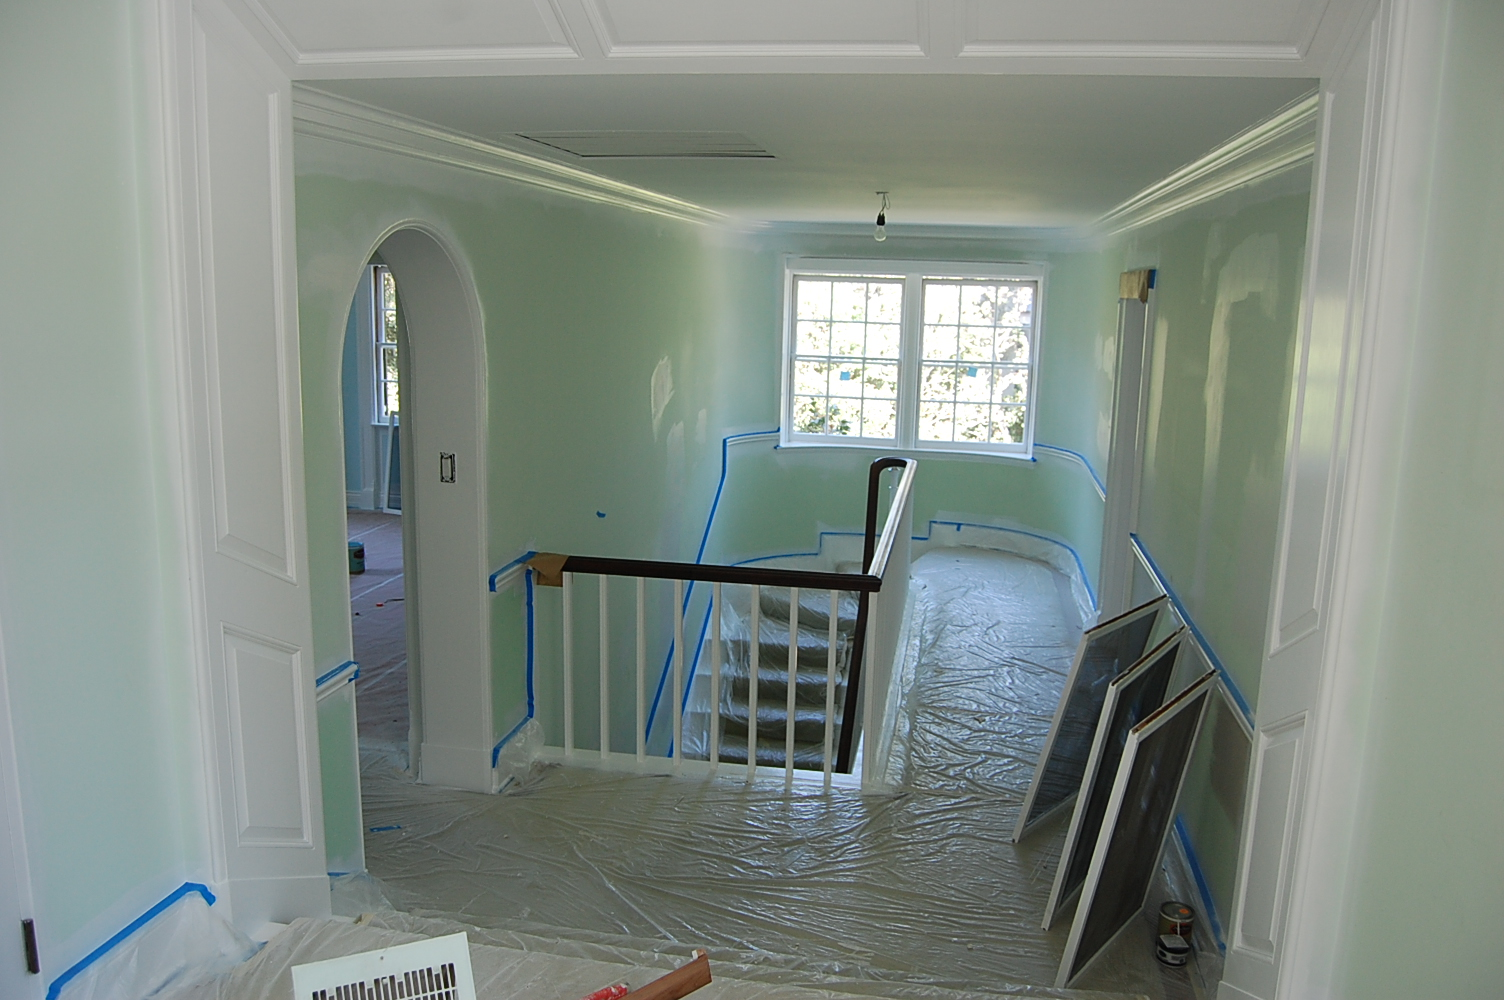 painting an old house interior interiors design wallpapers best